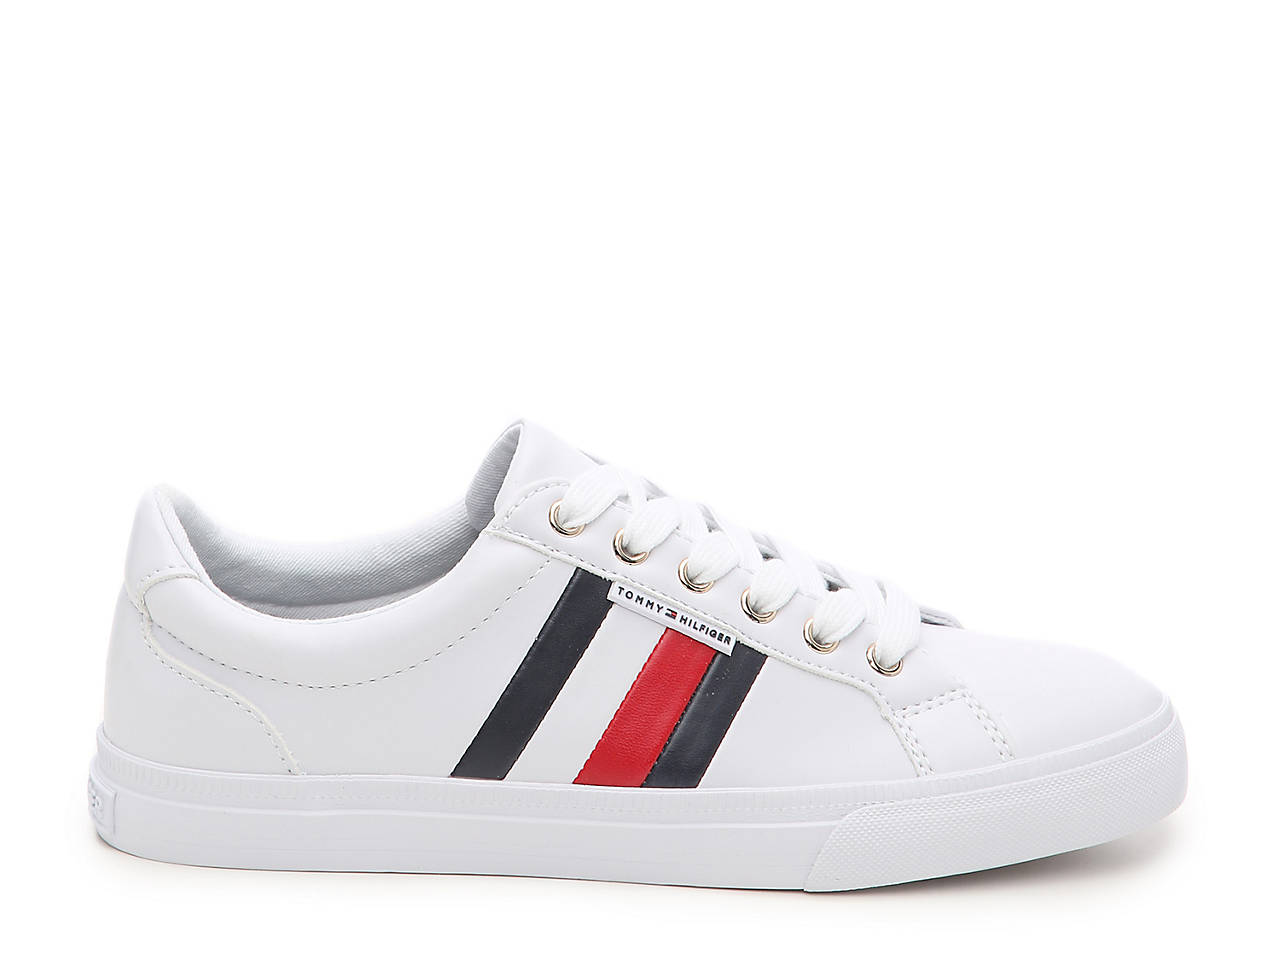 Tommy Hilfiger Lightz Sneaker Women s Shoes  8c49f3e3ce3